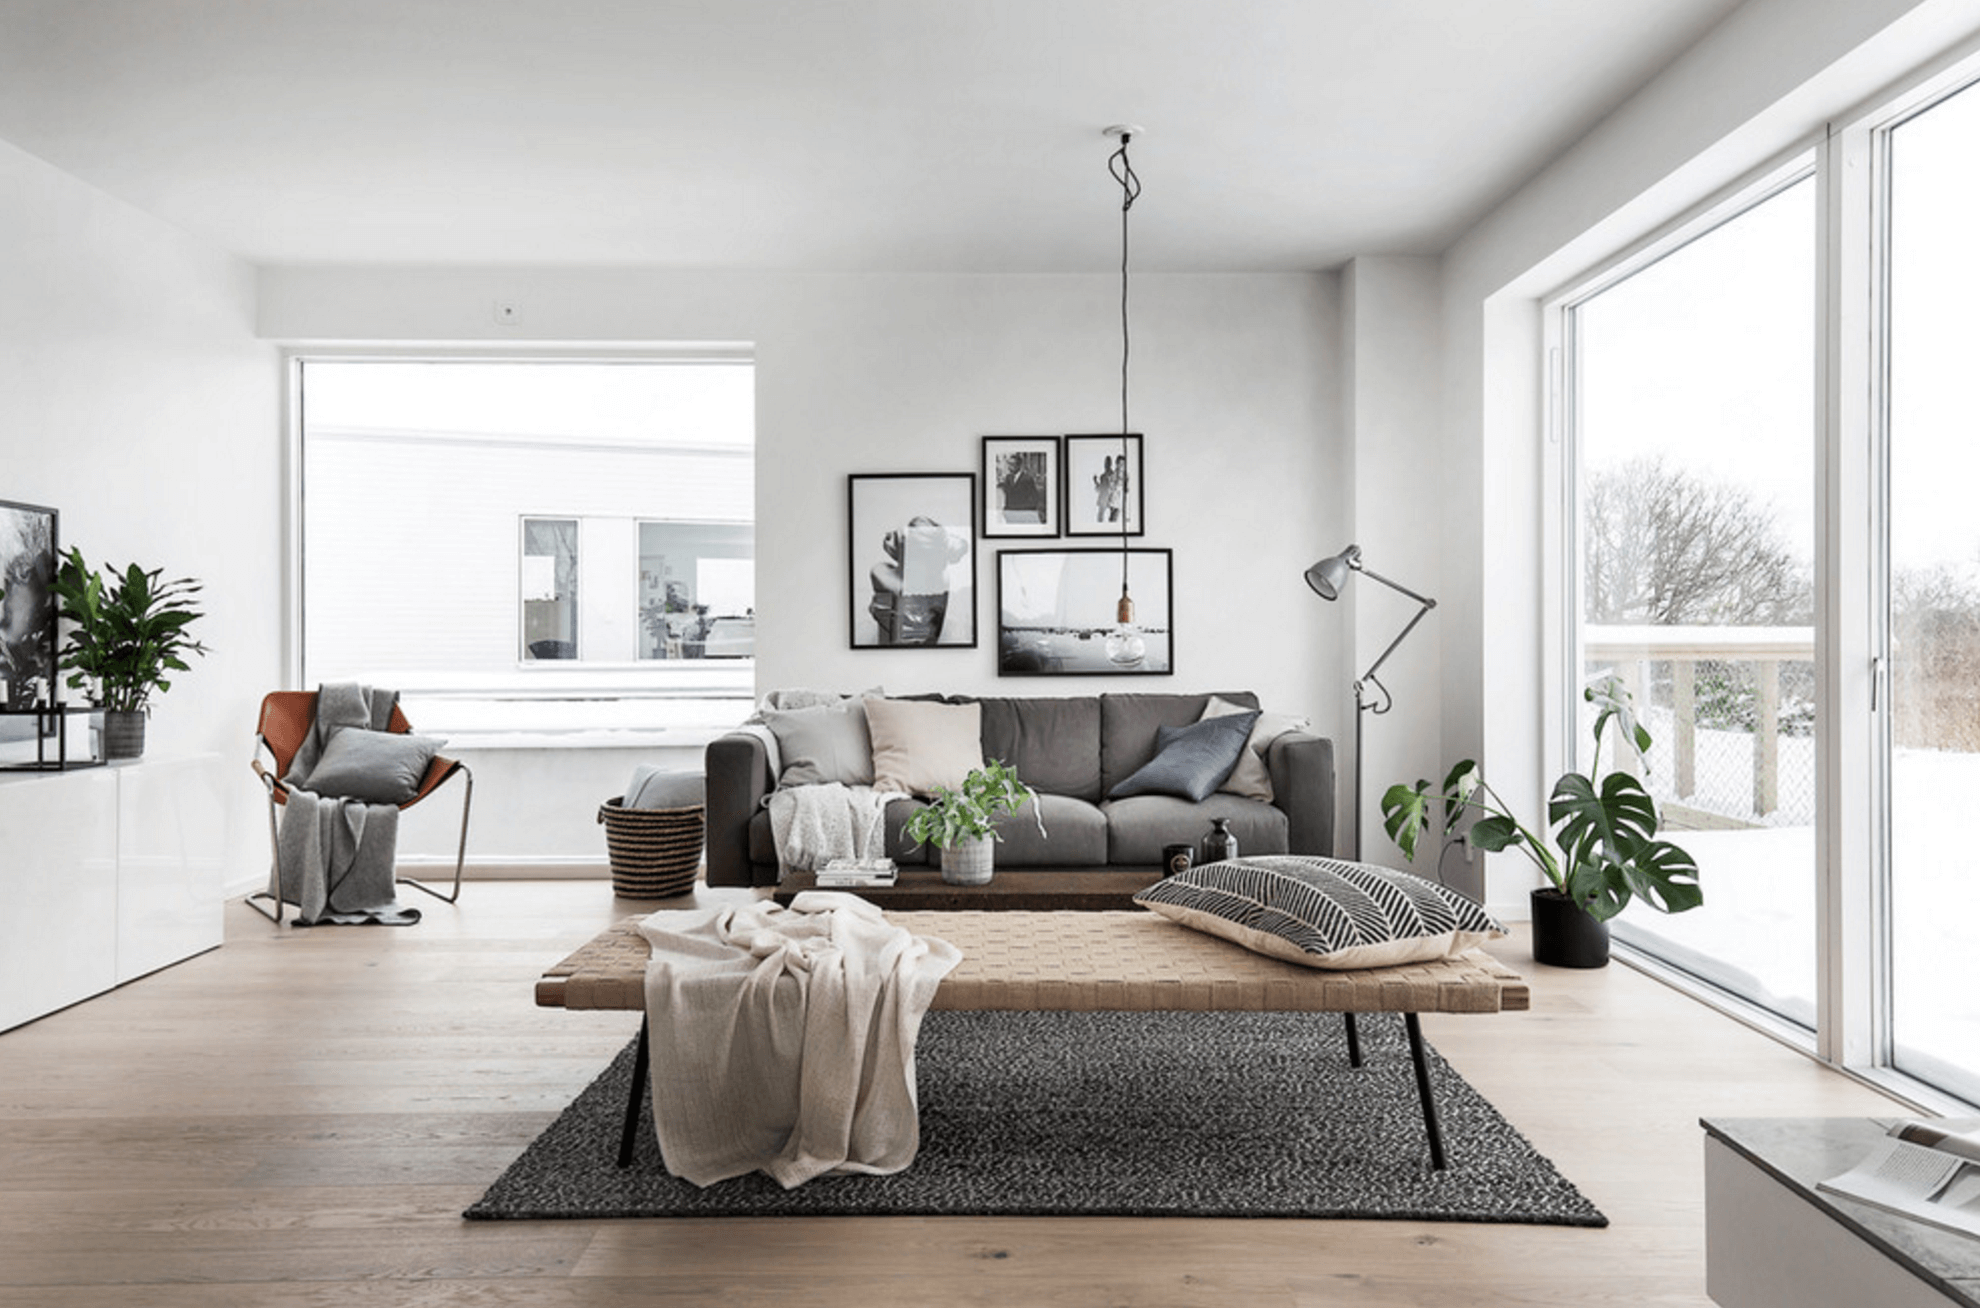 55 Scandinavian Interior Design Ideas, Update Your House Into 2018s Style